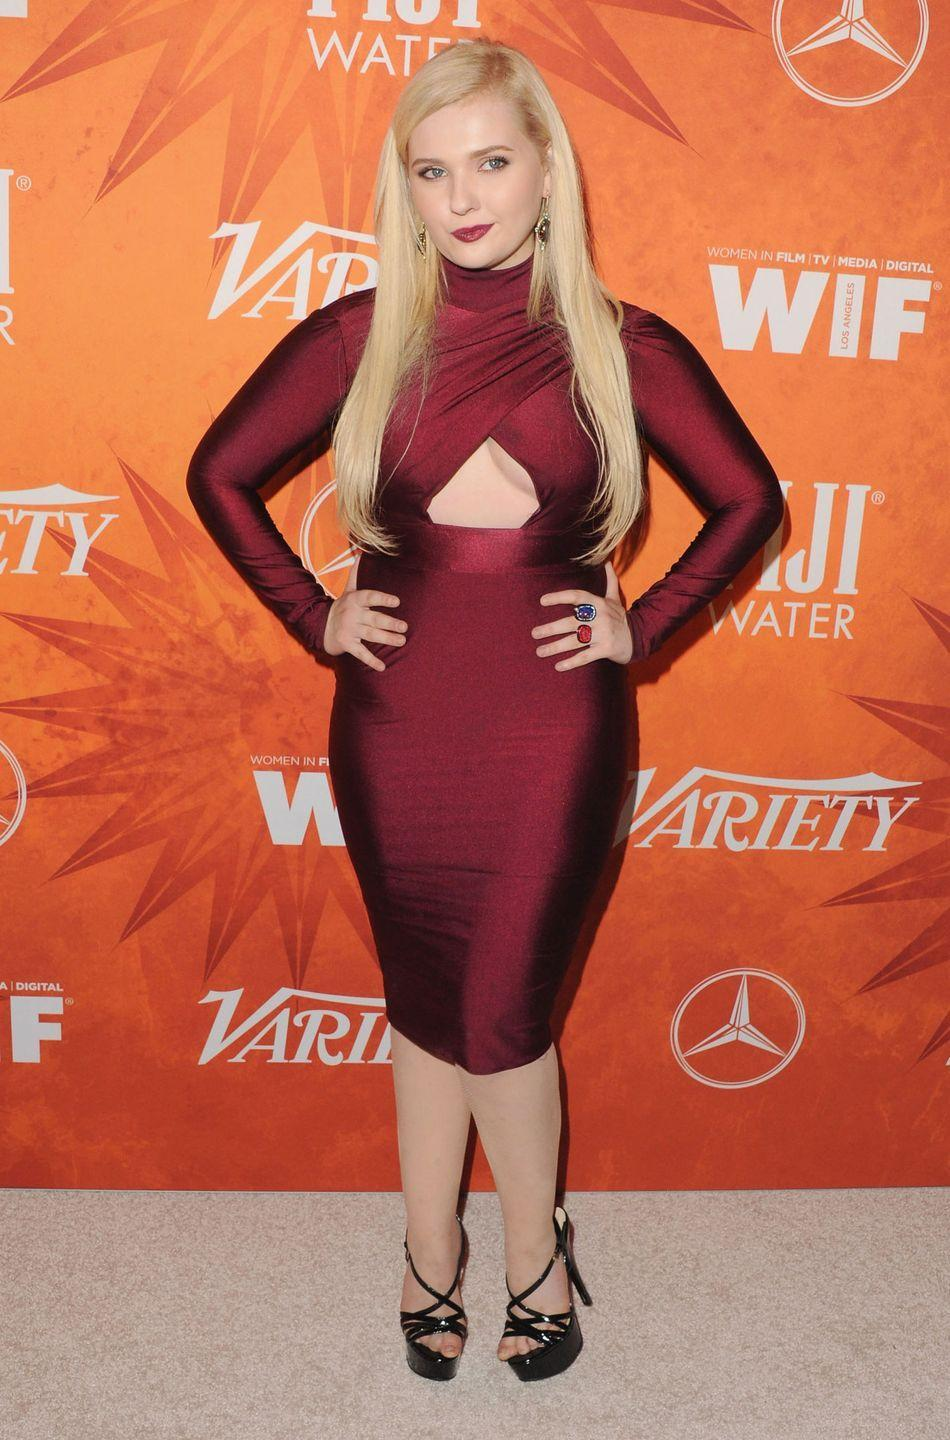 "<p>The 23-year-old actress ain't so little anymore — she's <a href=""https://www.goodhousekeeping.com/life/entertainment/a34523/abigail-breslin-emmys-red-carpet/"" rel=""nofollow noopener"" target=""_blank"" data-ylk=""slk:shed the quirky track suit and glasses"" class=""link rapid-noclick-resp"">shed the quirky track suit and glasses</a>, and she starred in Ryan Murphy's campy TV series, <em>Scream Queens</em>.</p>"